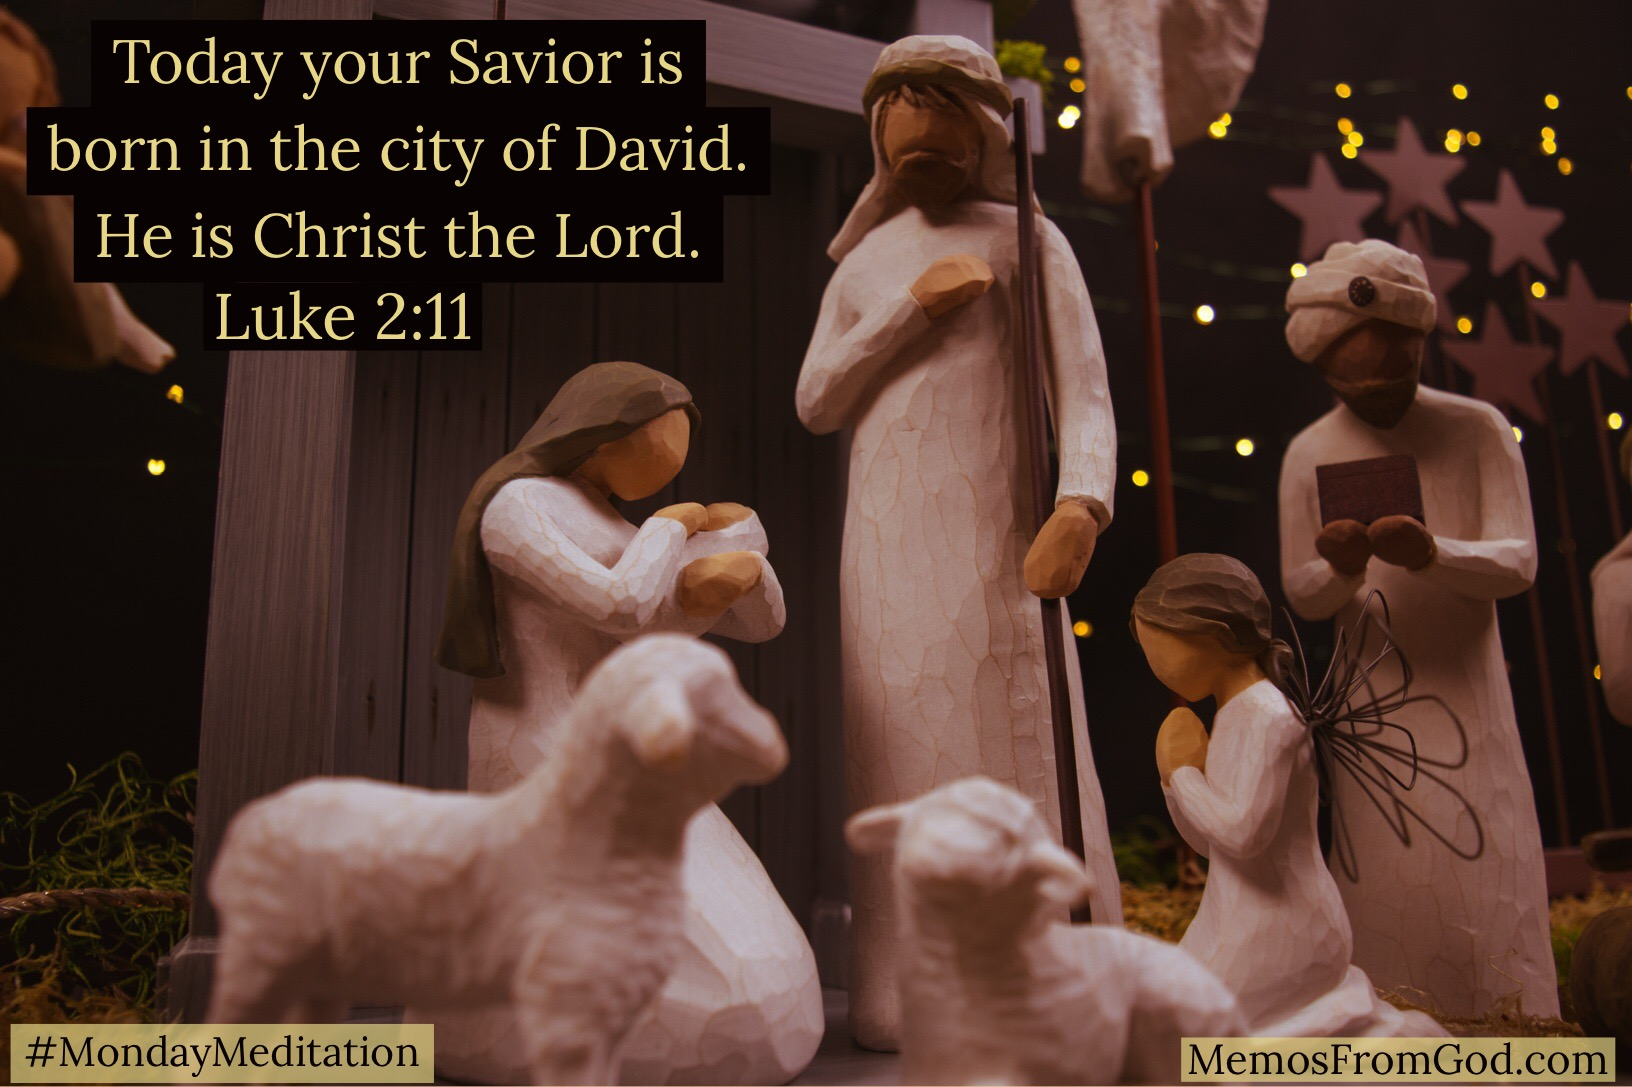 Today your Savior is born in the city of David. He is Christ the Lord. Luke 2:11